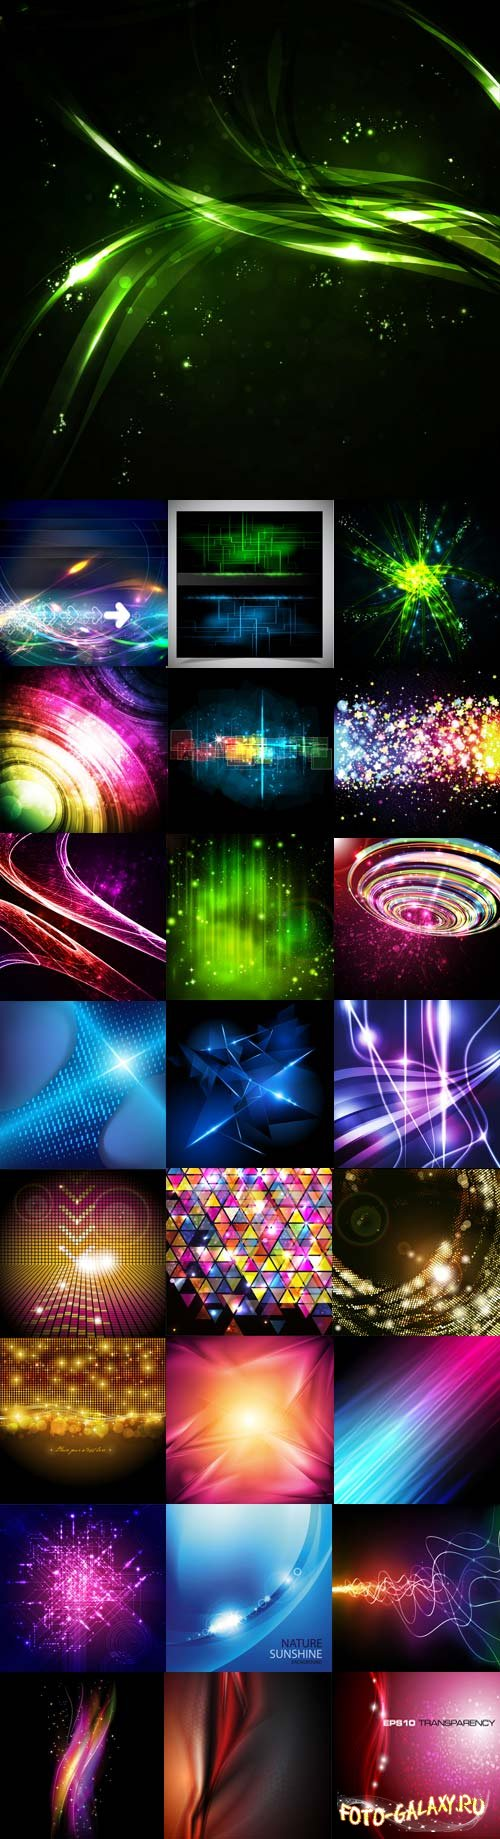 Bright colorful abstract backgrounds vector  - 2